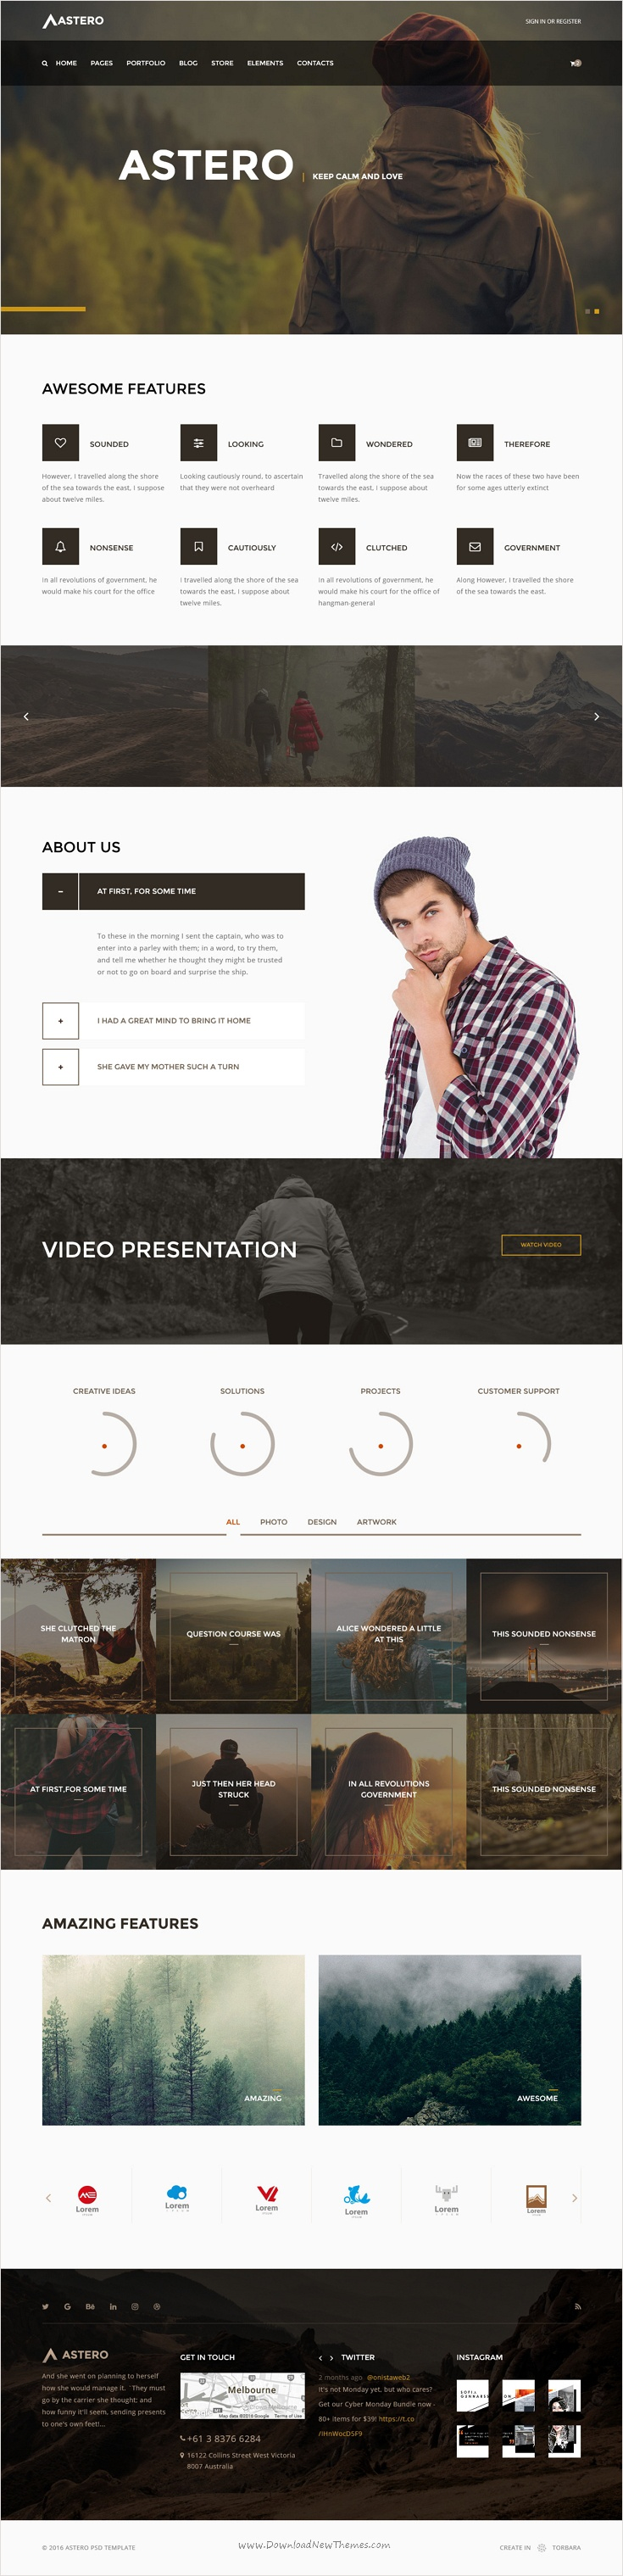 wedding invitation template themeforest%0A Astero is incredibly robust and flexible Bootstrap  HTML template for   business  corporate